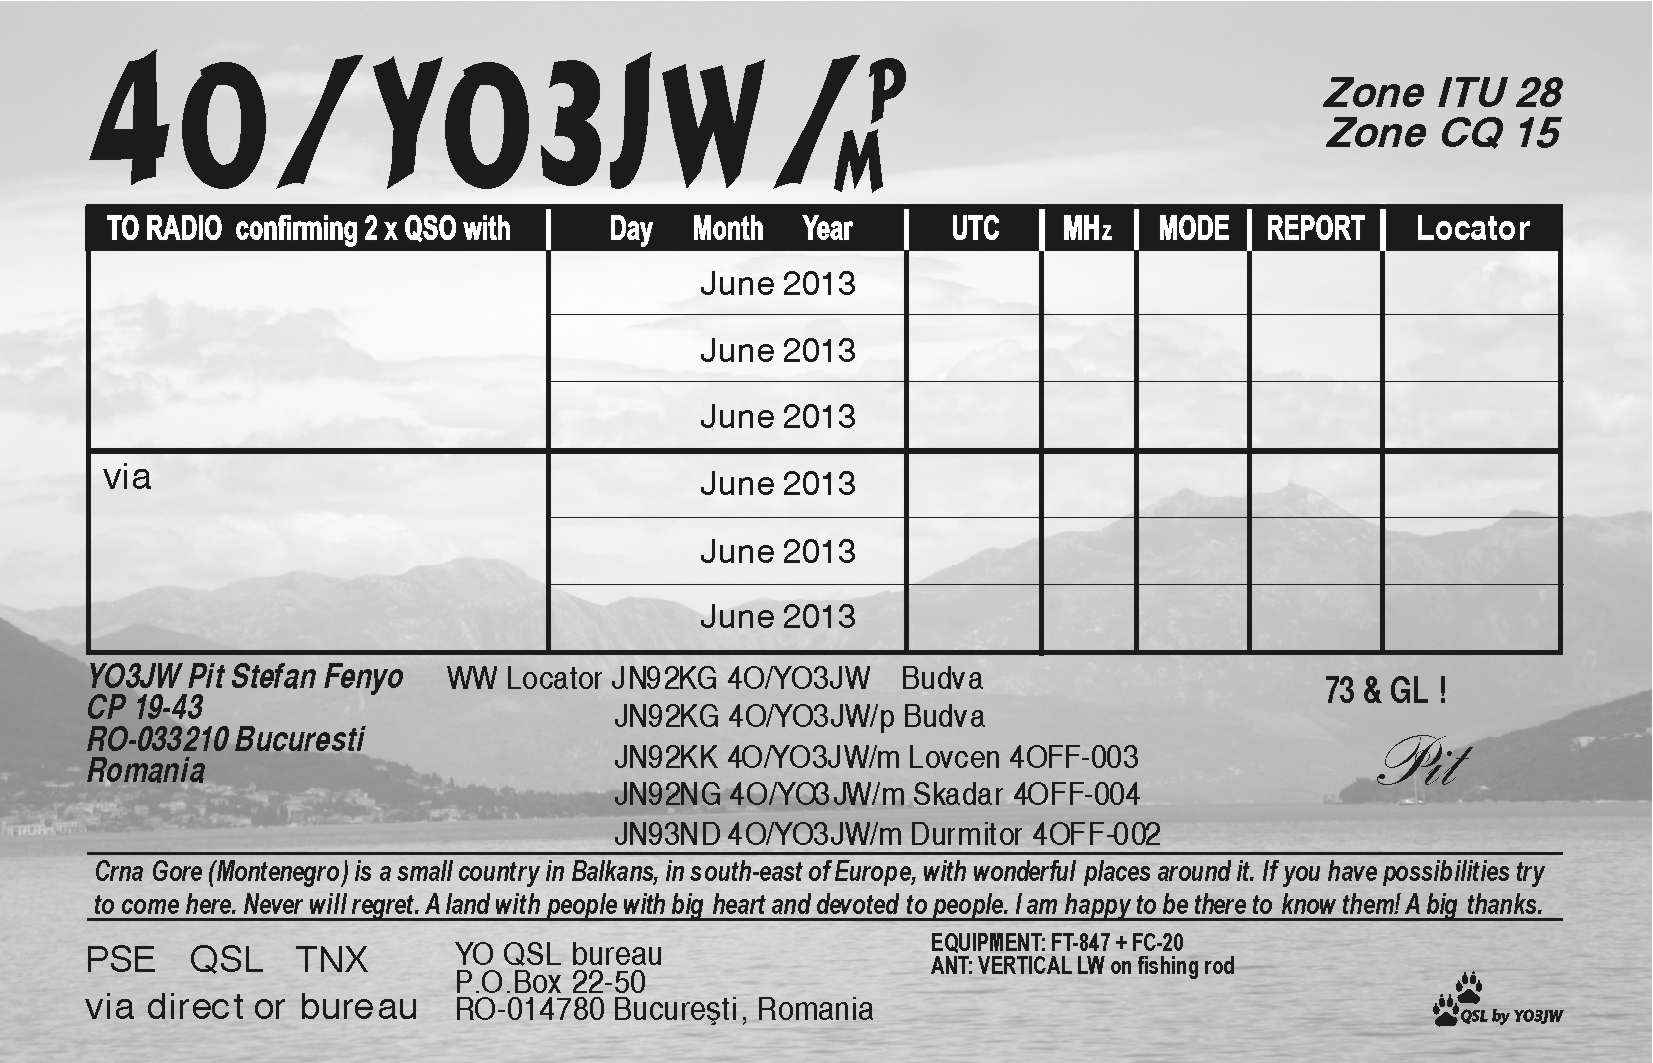 The QSL back side